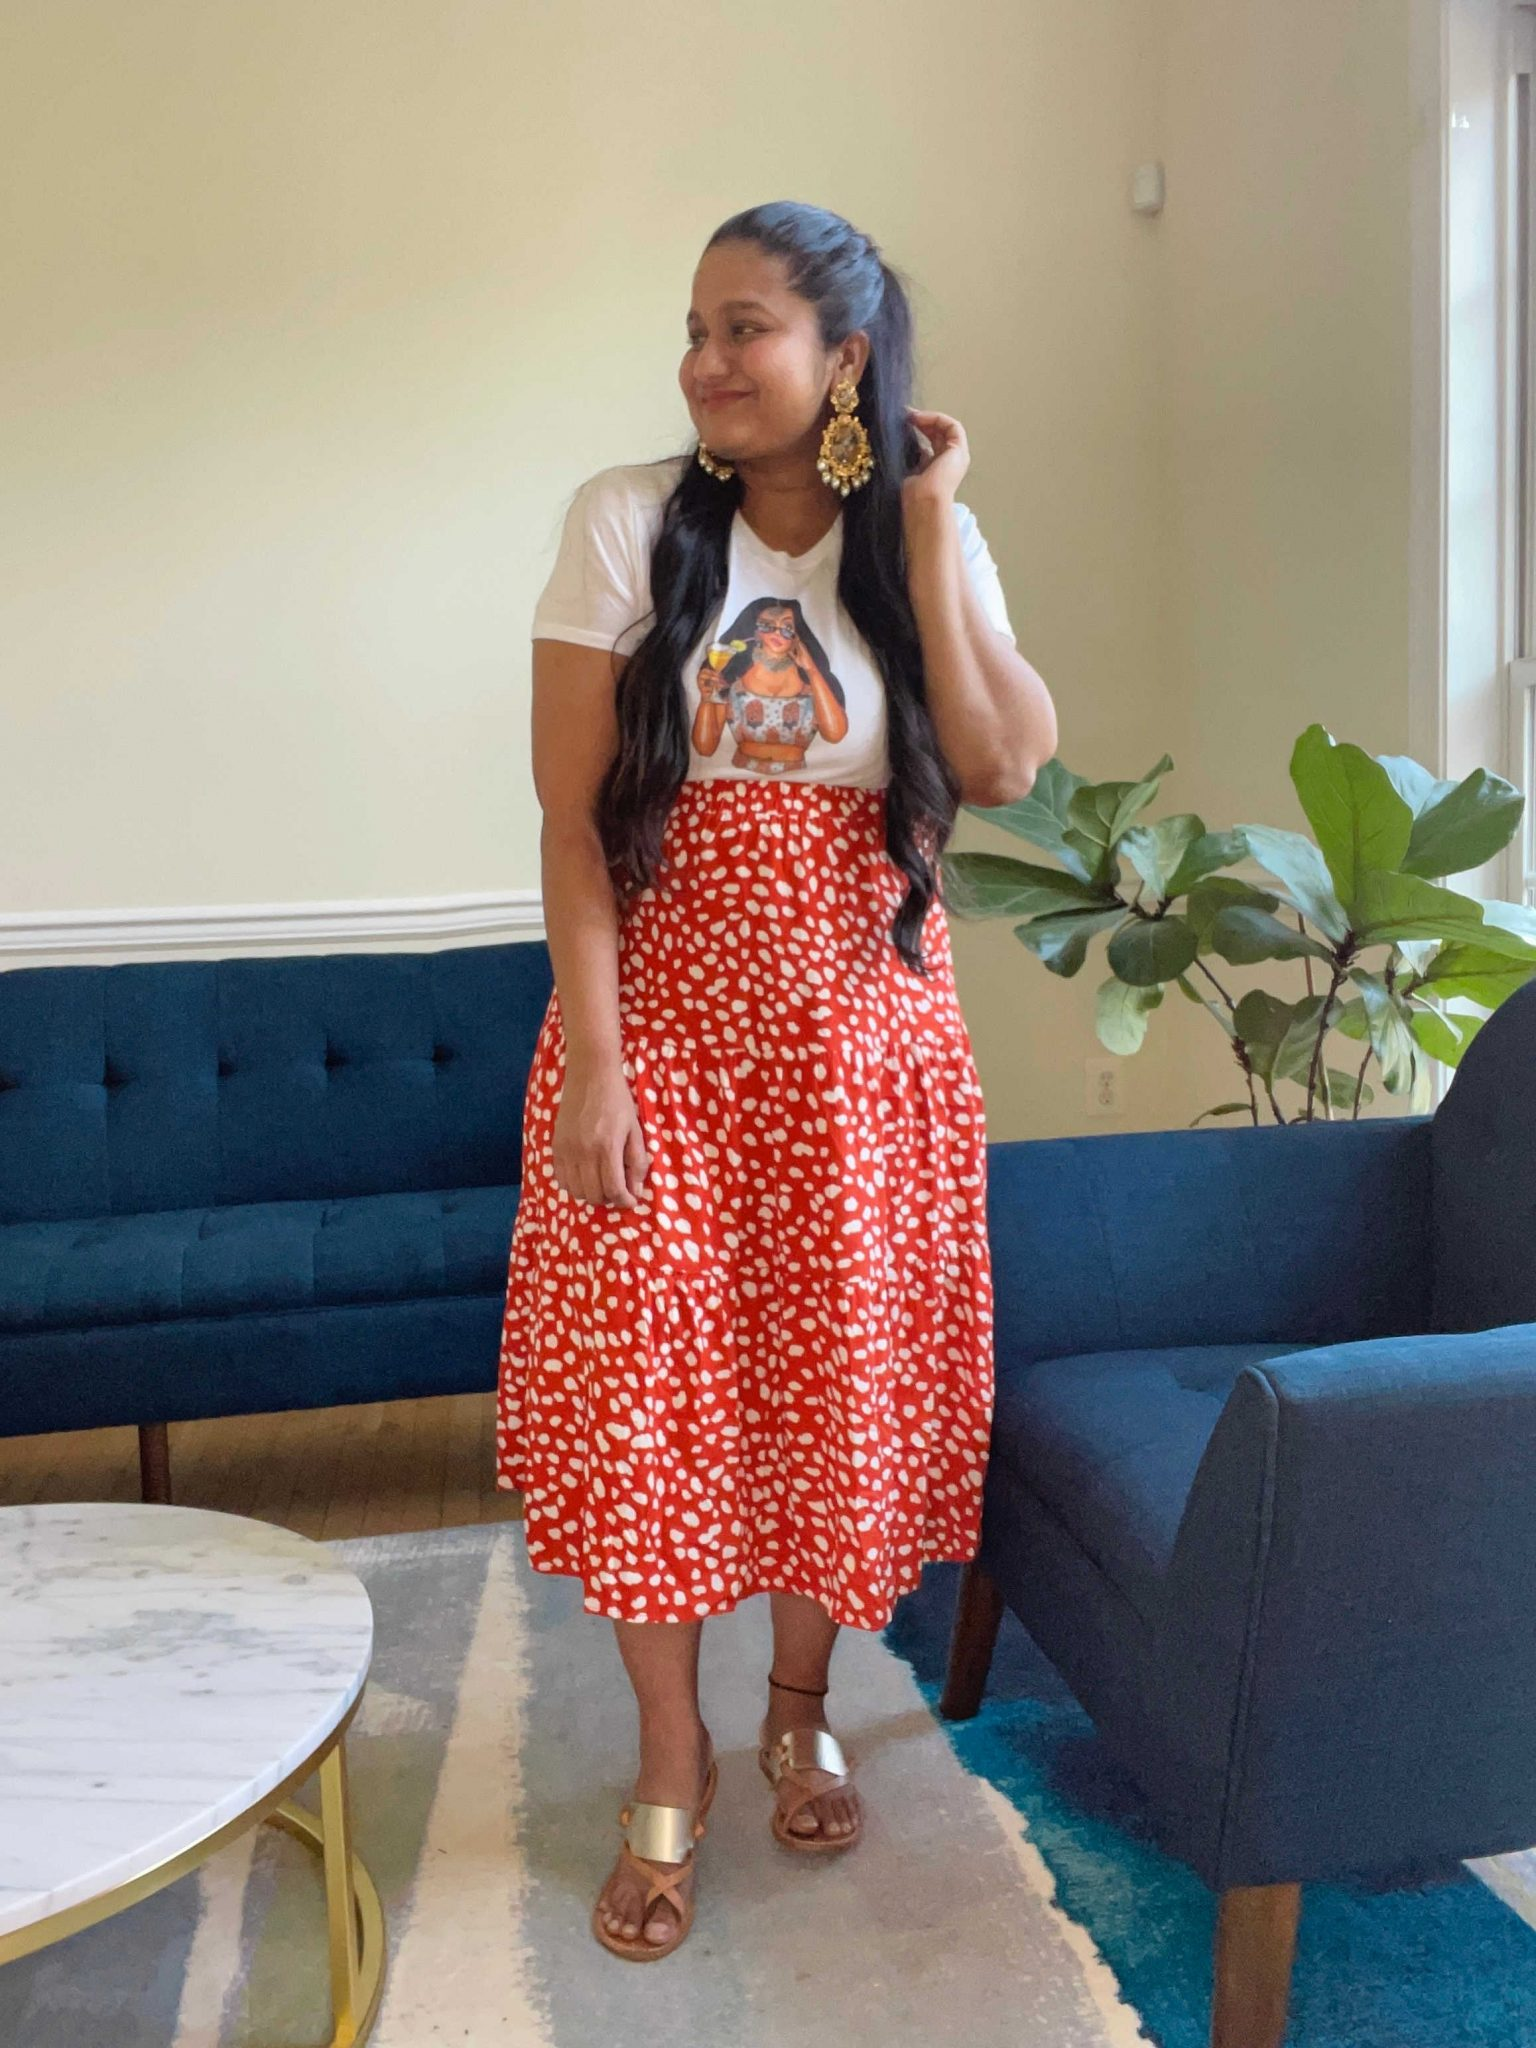 Wearing Amazon red printed midi skirt, Holi chic by Megha Margarita - cropped tee, Soludos Slotted Thong Sandals, Radha Krishna statement earrings. | Amazon Printed Midi Skirt by popular Maryland modest fashion blog, Dreaming Loud: image of a woman wearing a Amazon red and white floral print midi skirt, gold strap sandals, graphic t-shirt, and gold statement earrings.